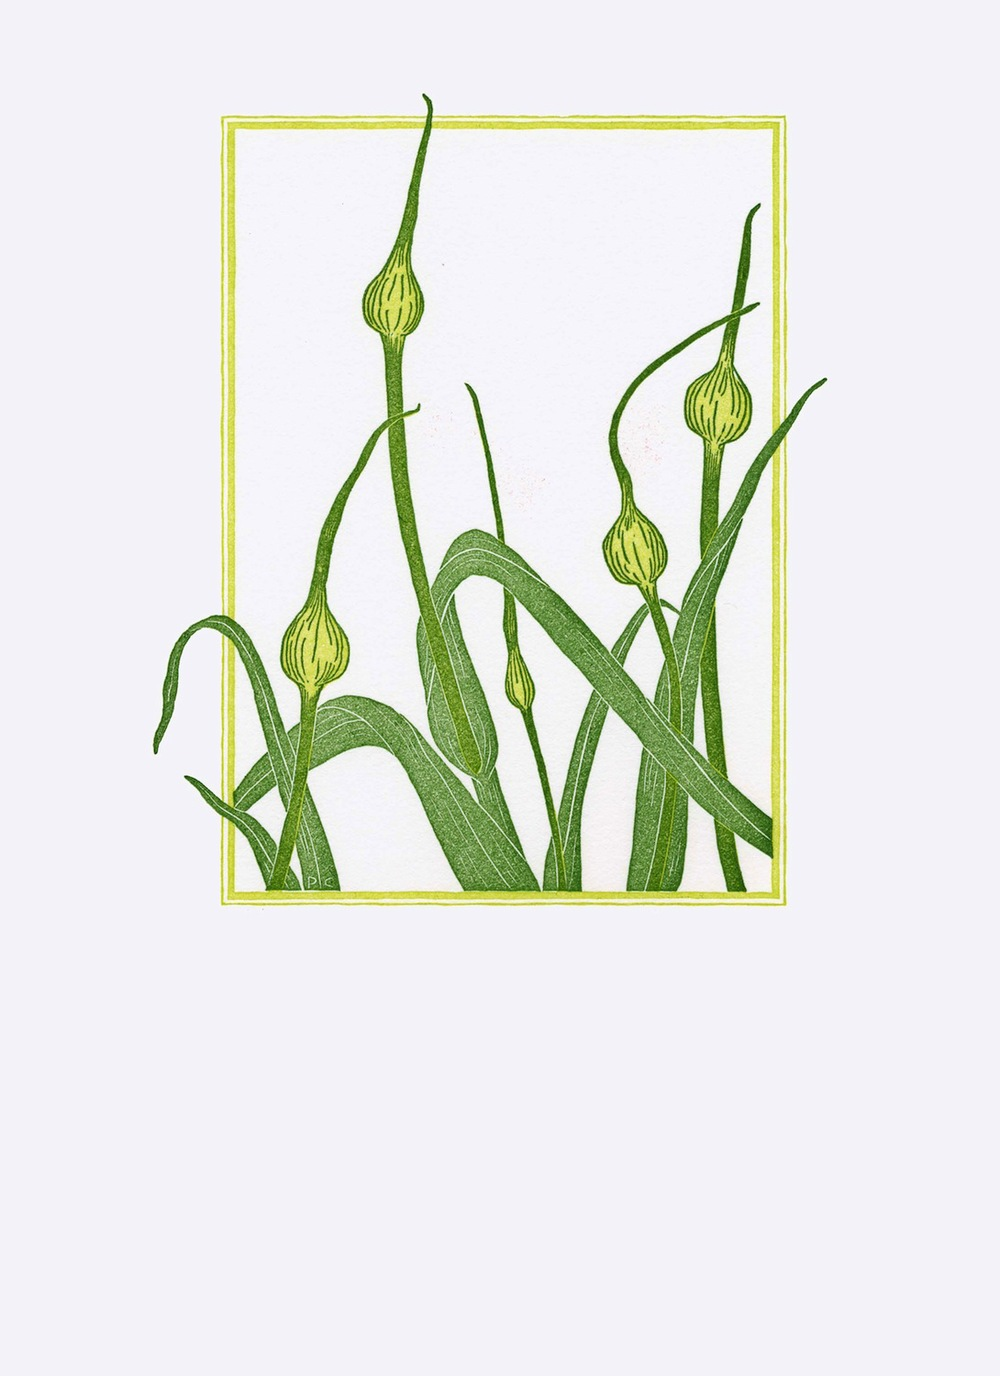 Garlic Stalks